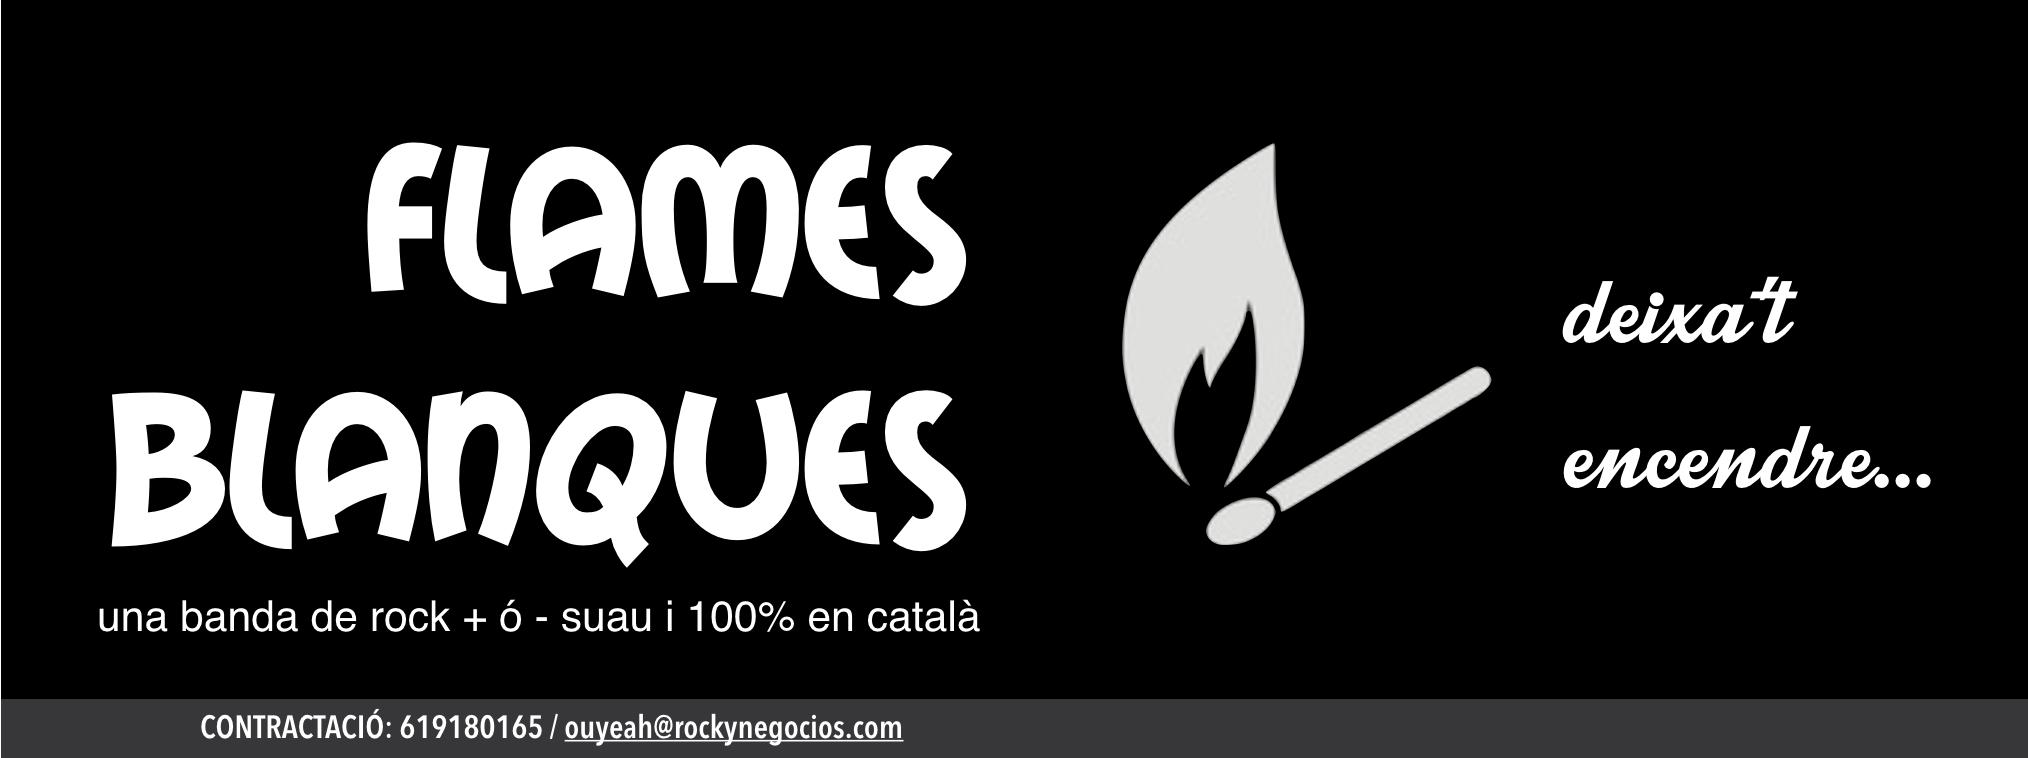 Image Flames Blanques